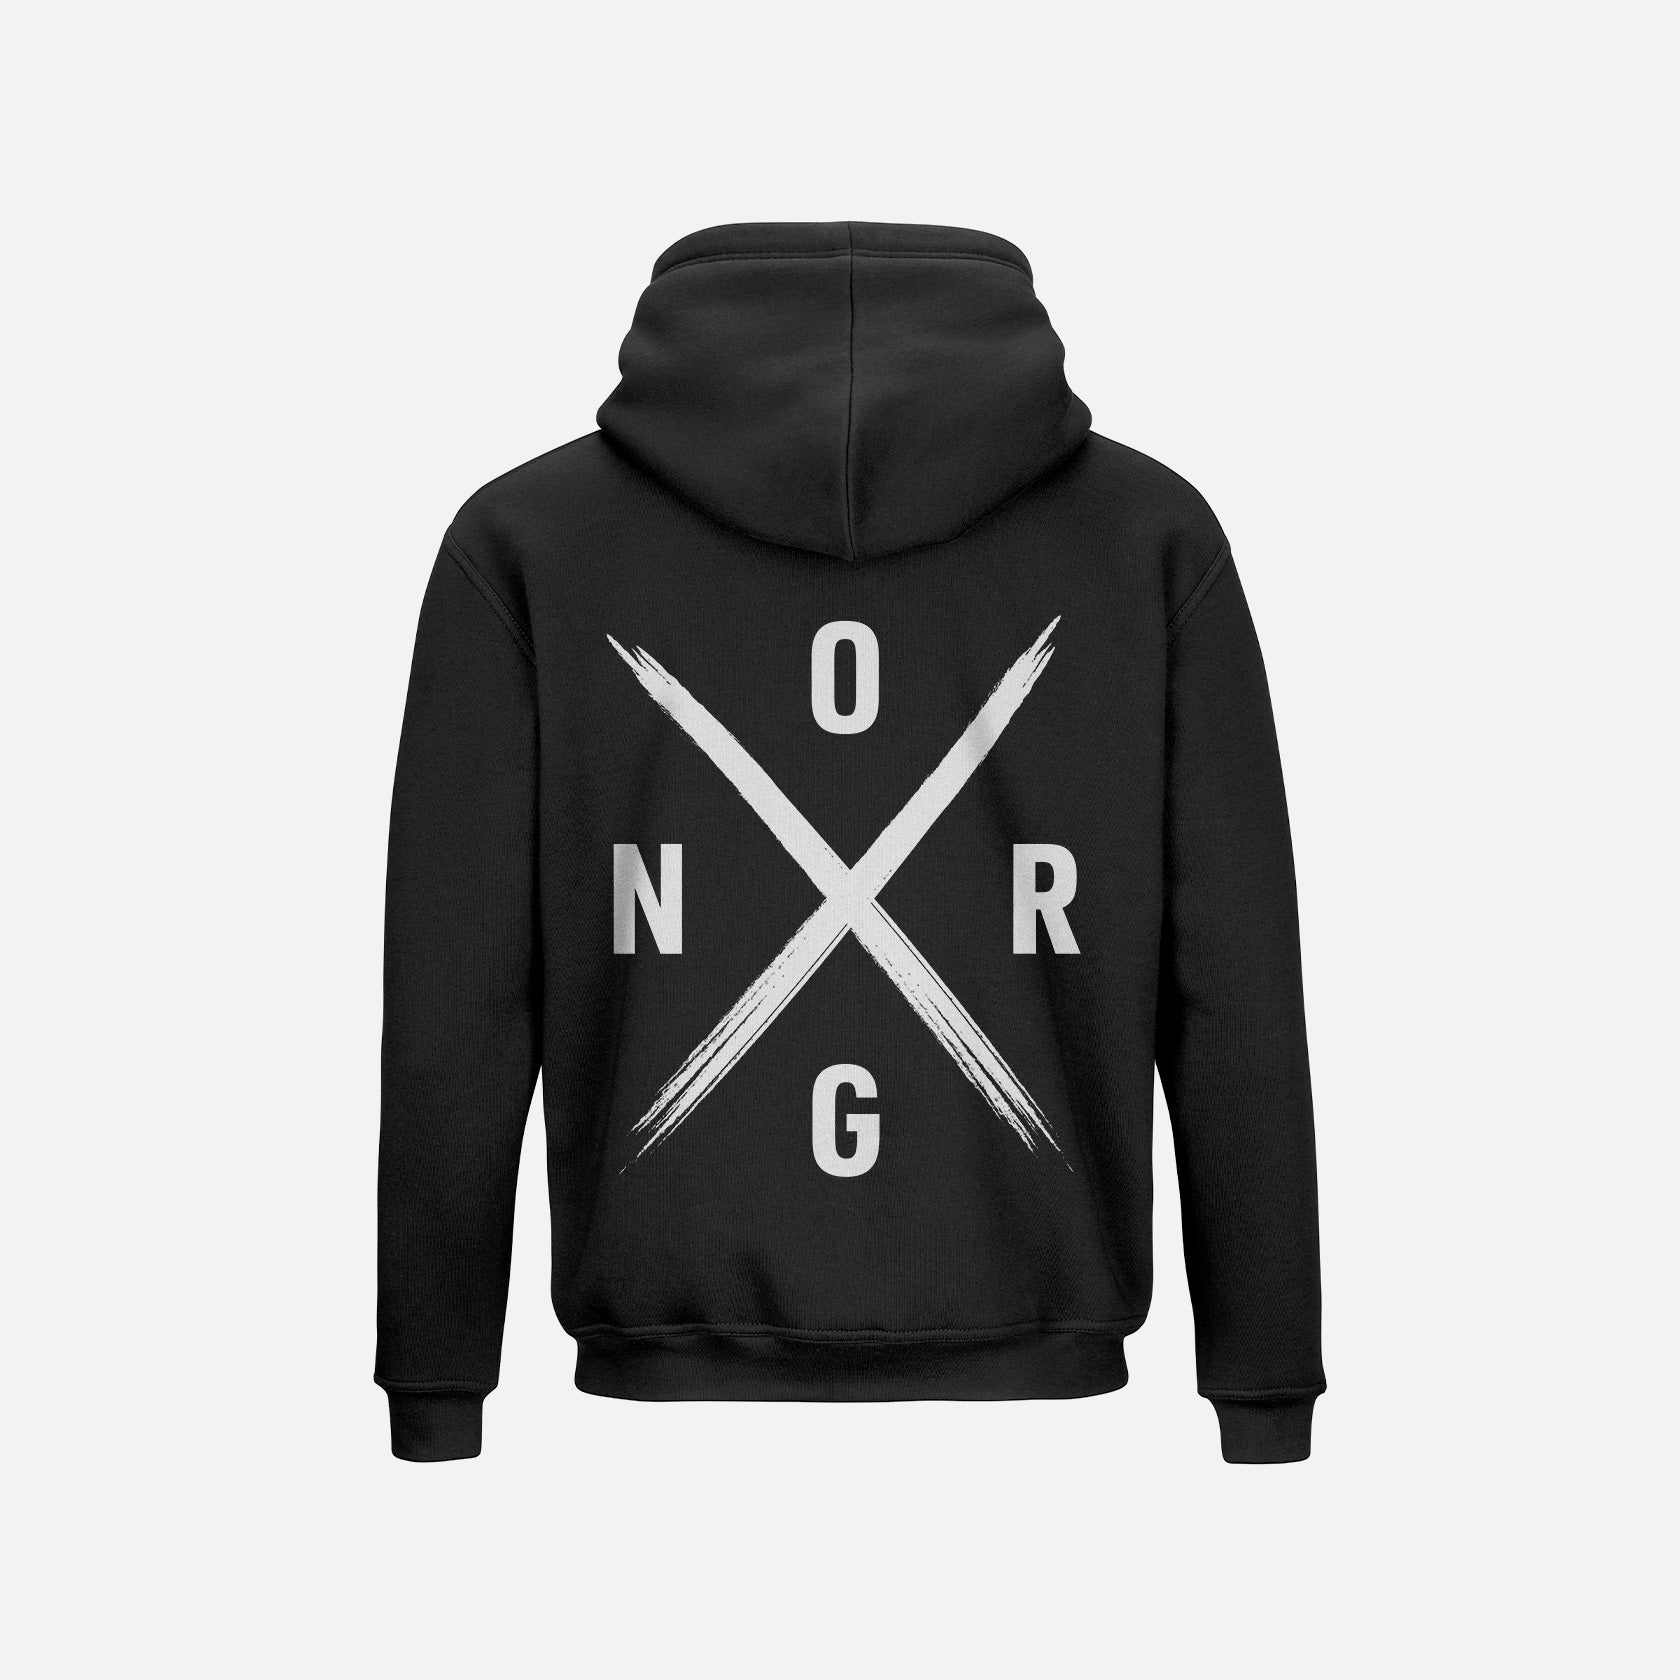 ORGNX Simple X Hoodie Black